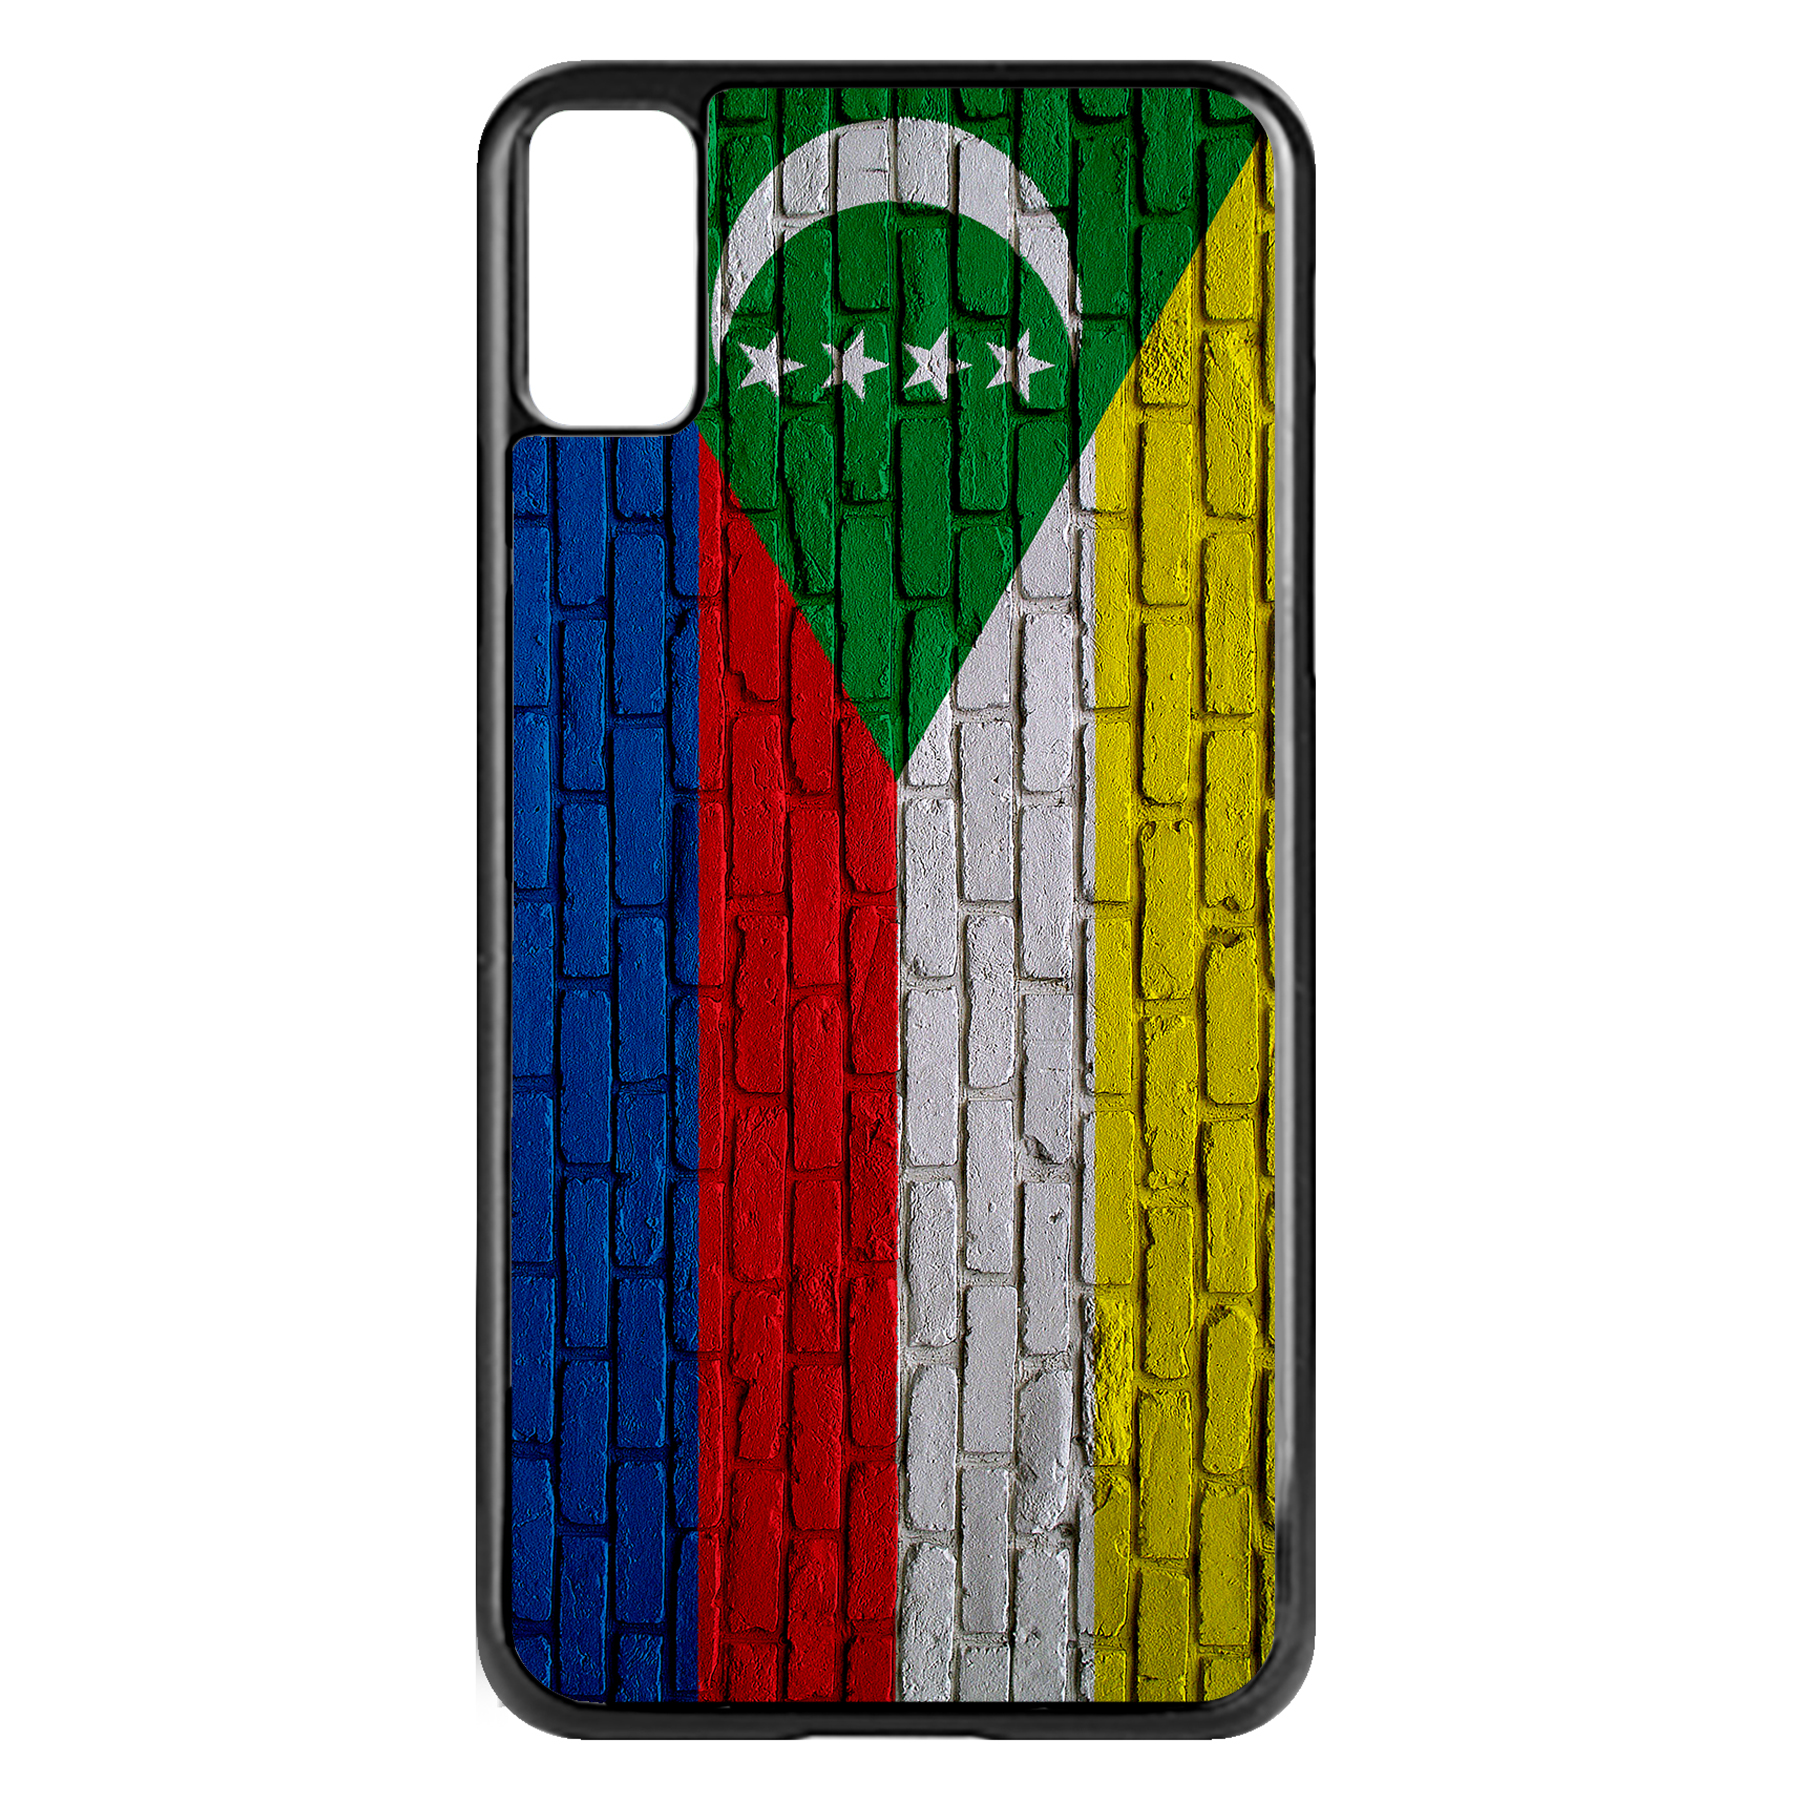 Apple-iPhone-Case-with-Flag-of-Comoros-Comorian-Many-Design-Options thumbnail 47